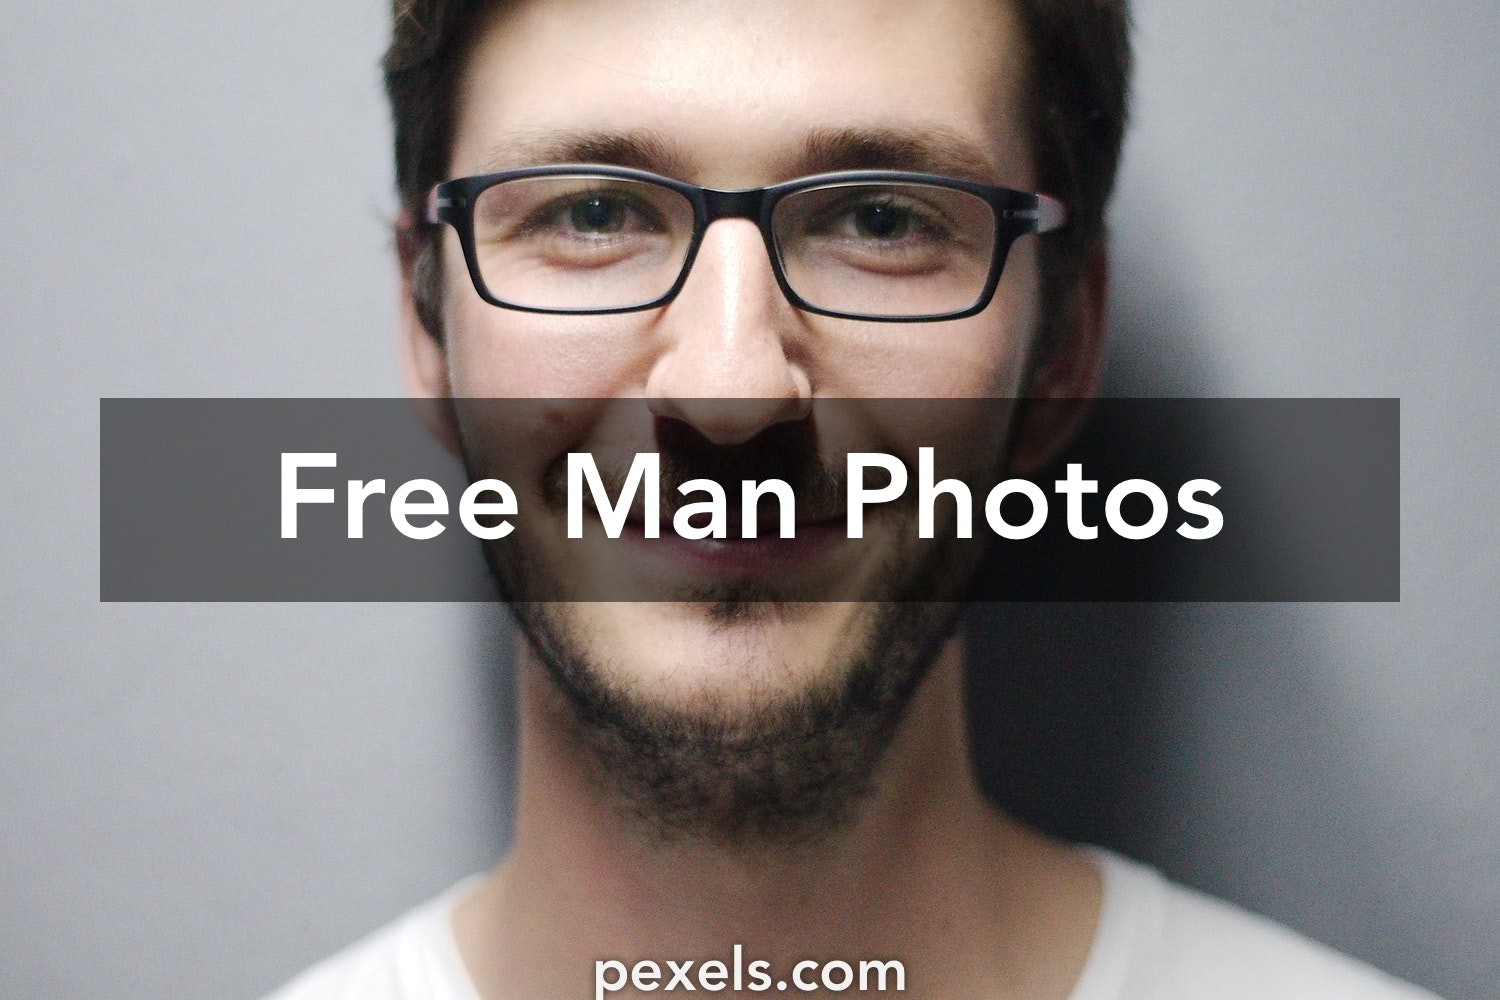 Man Photos Pexels Free Stock Photos